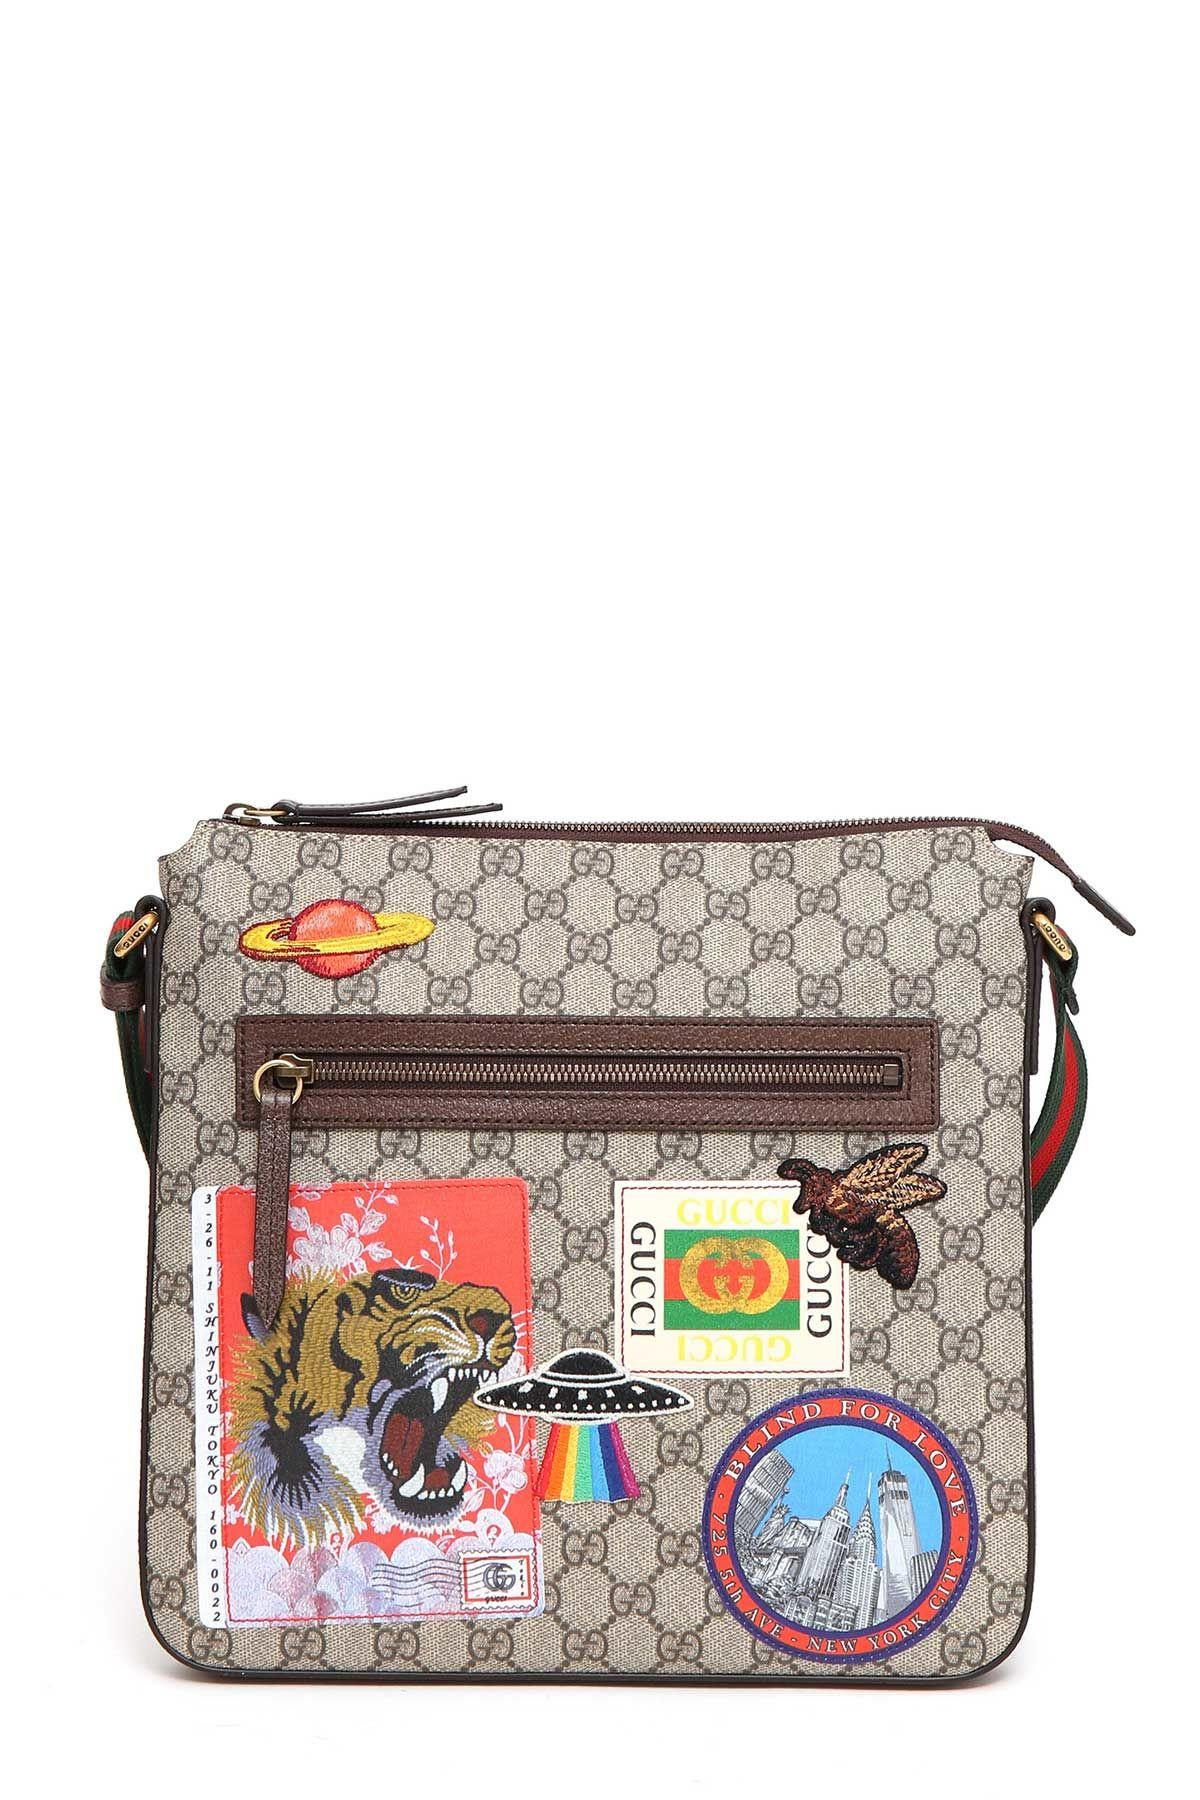 5166c6c41c2 Gucci Gg Supreme Fabric Courrier Bag In Beige Ebony-Multi